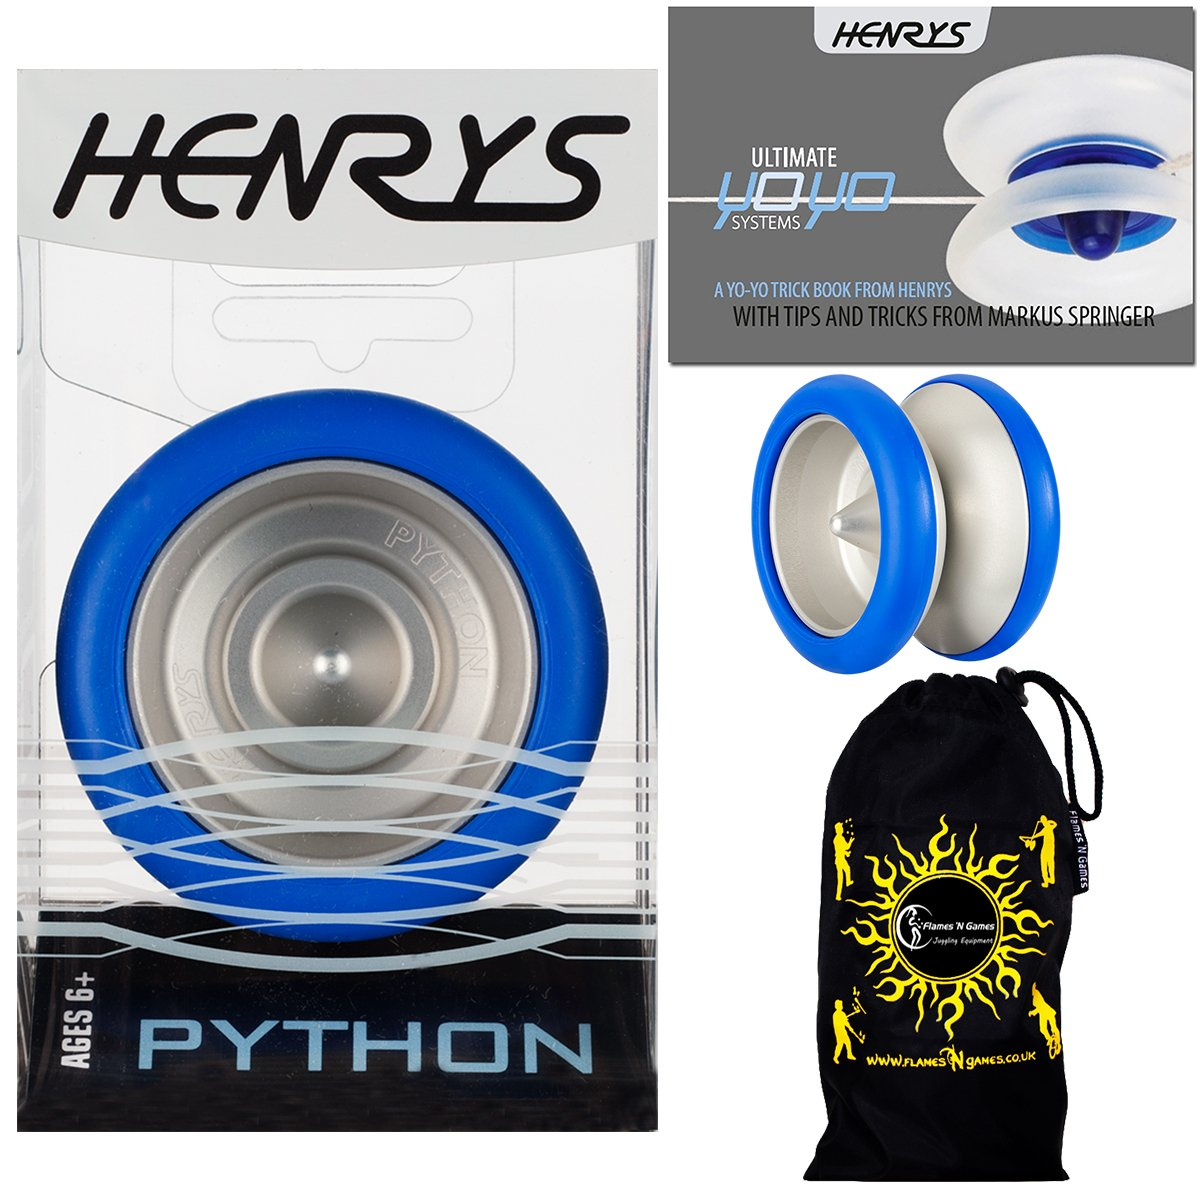 Henrys PYTHON Pro YoYo (Blue) Metal Professional String Trick (1A, 3A, 5A) Bearing YoYo +Instructional Booklet of Tricks & Travel Bag! Top Of The Range YoYo! Pro YoYos For Kids and Adults. by Henrys YoYo's